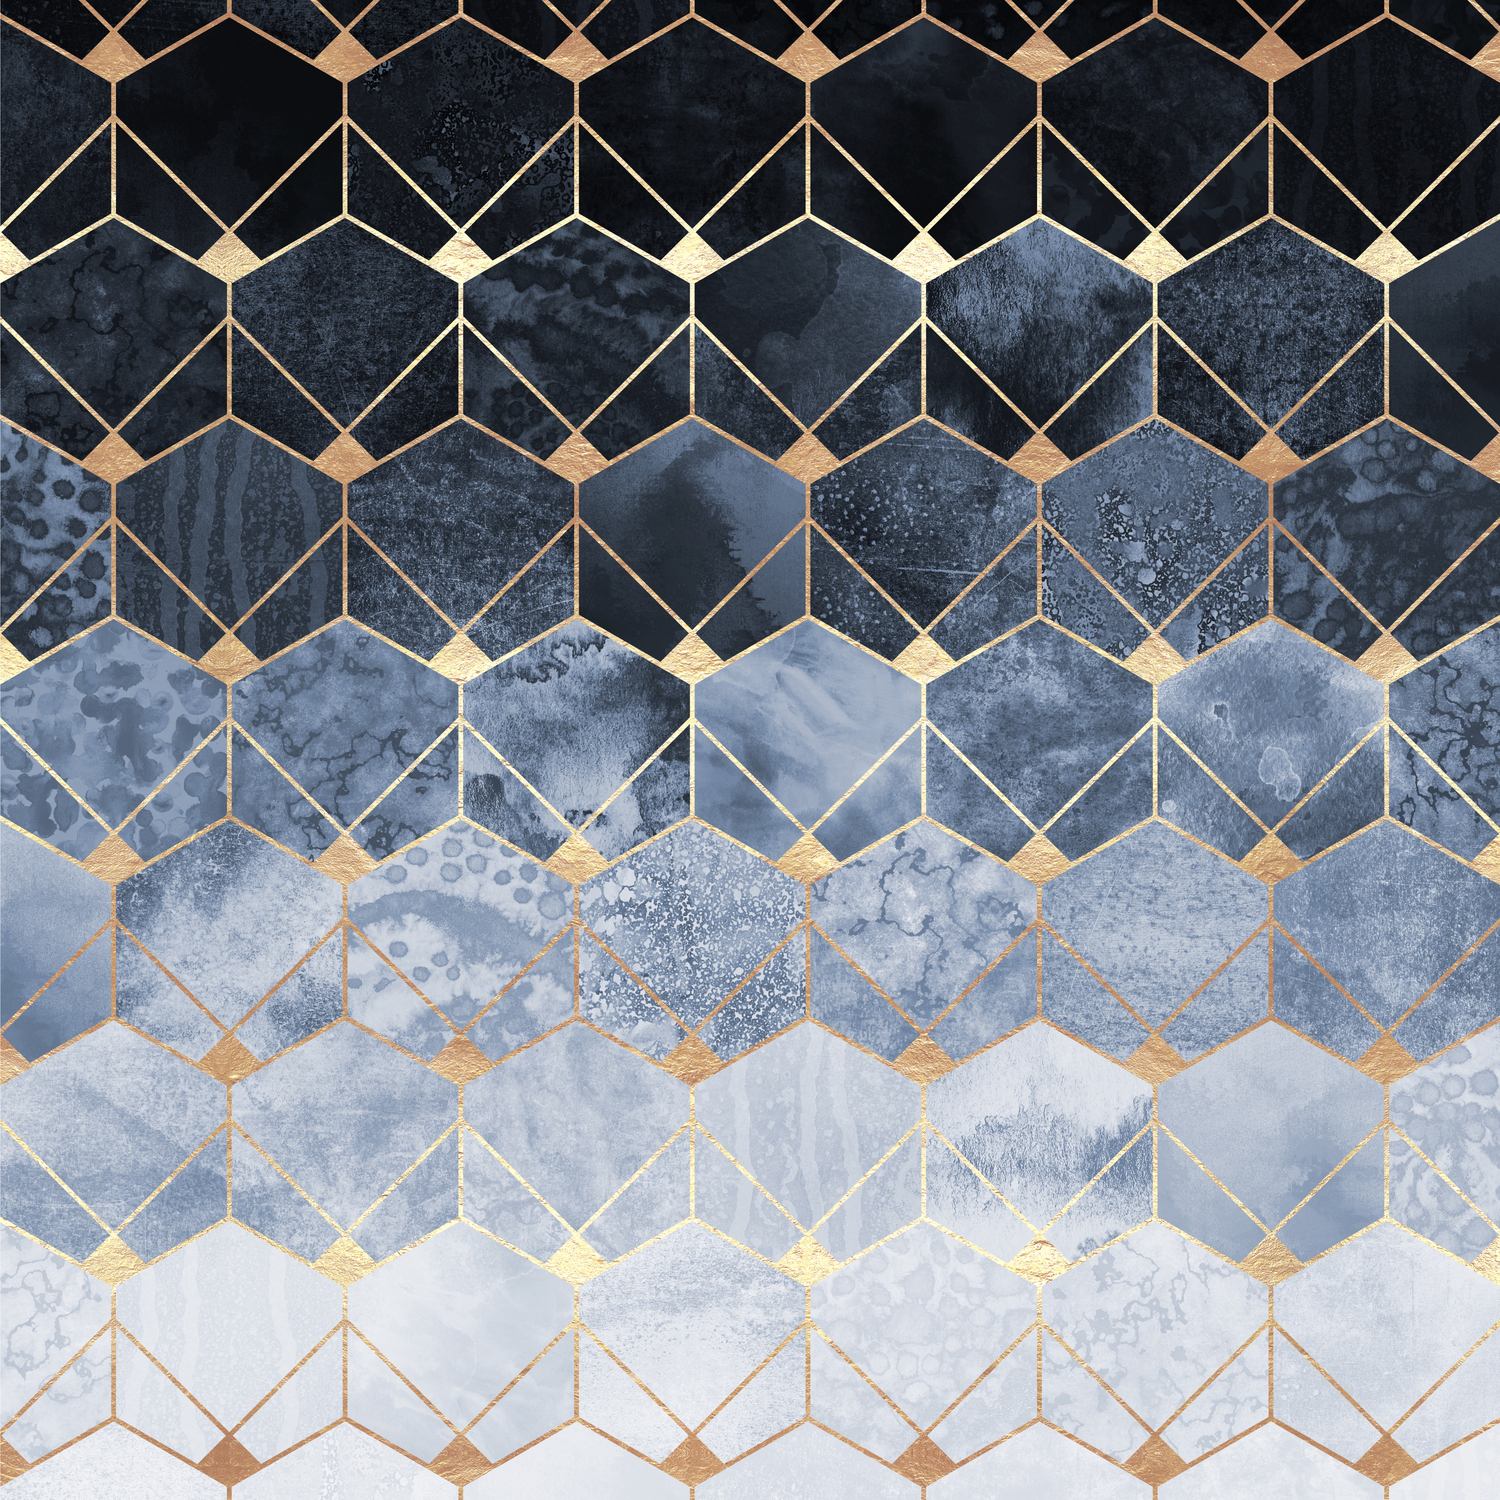 Blue Hexagons And Diamonds Duvet Cover With Blue Hexagons And Diamonds Credenzas (View 4 of 20)